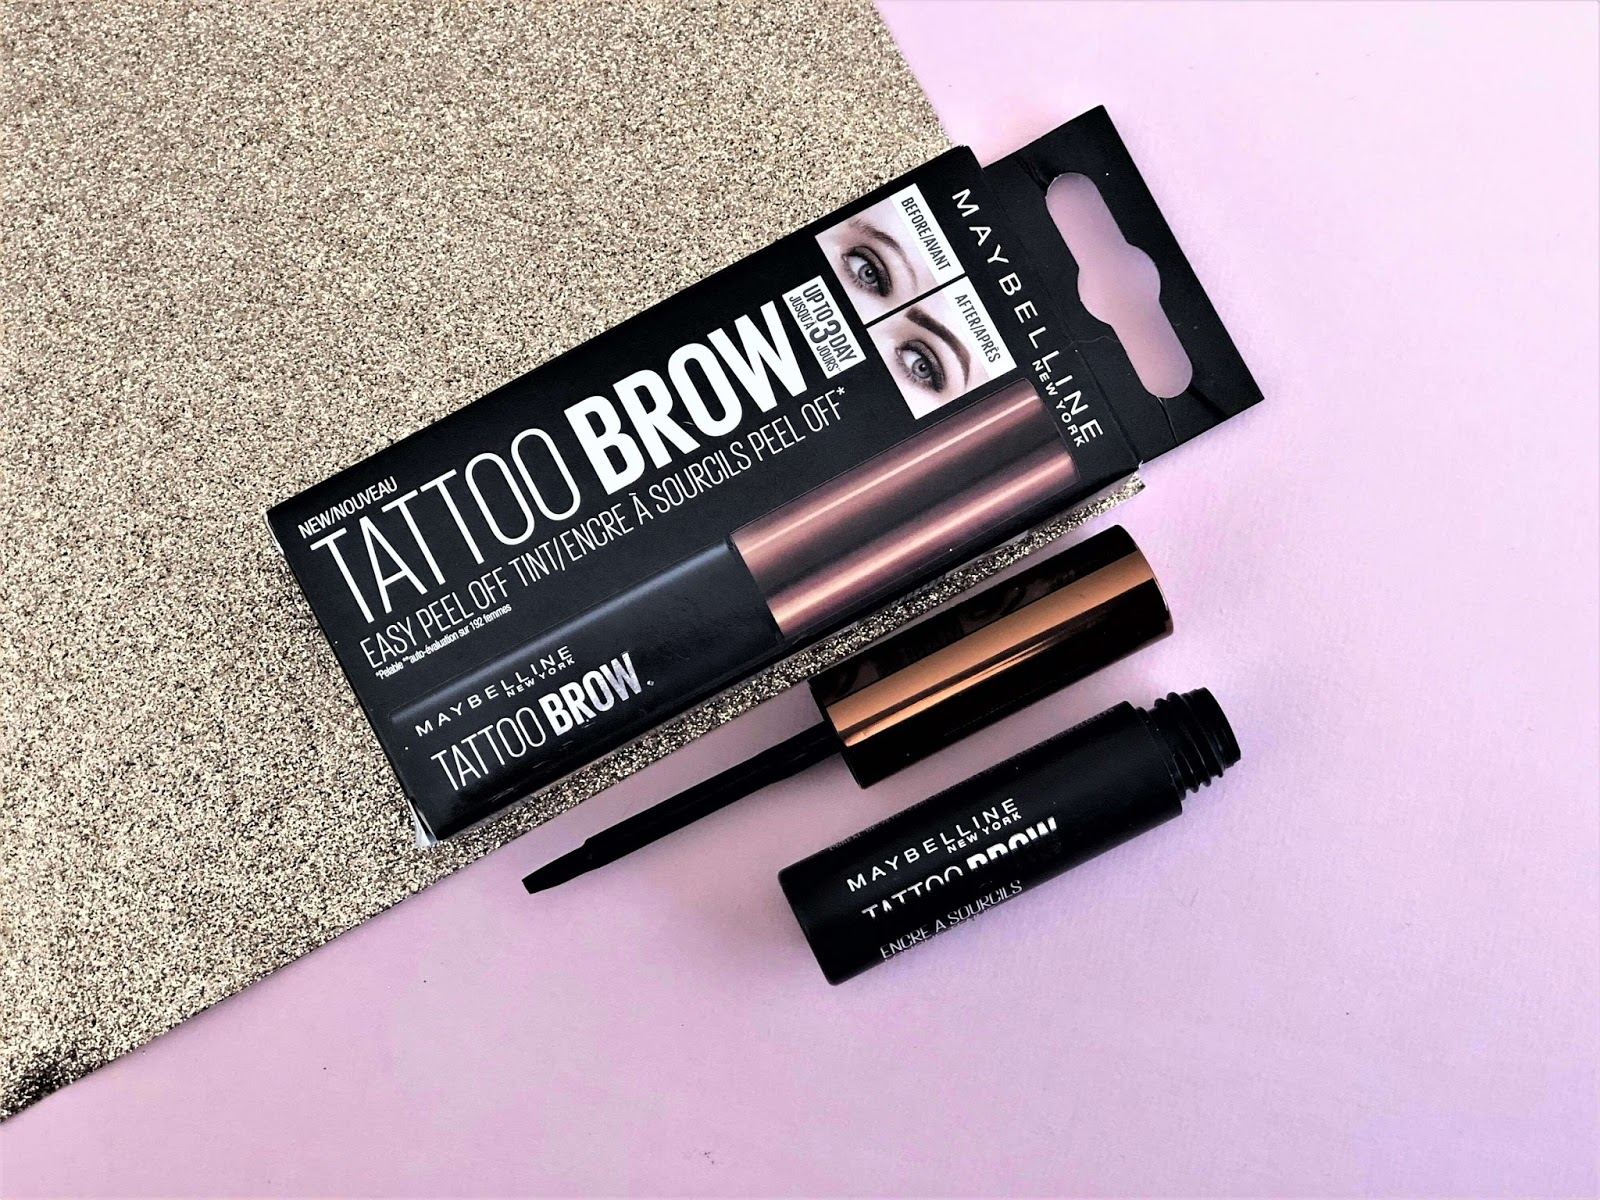 Tatoo Brow de Maybelline alt crash test